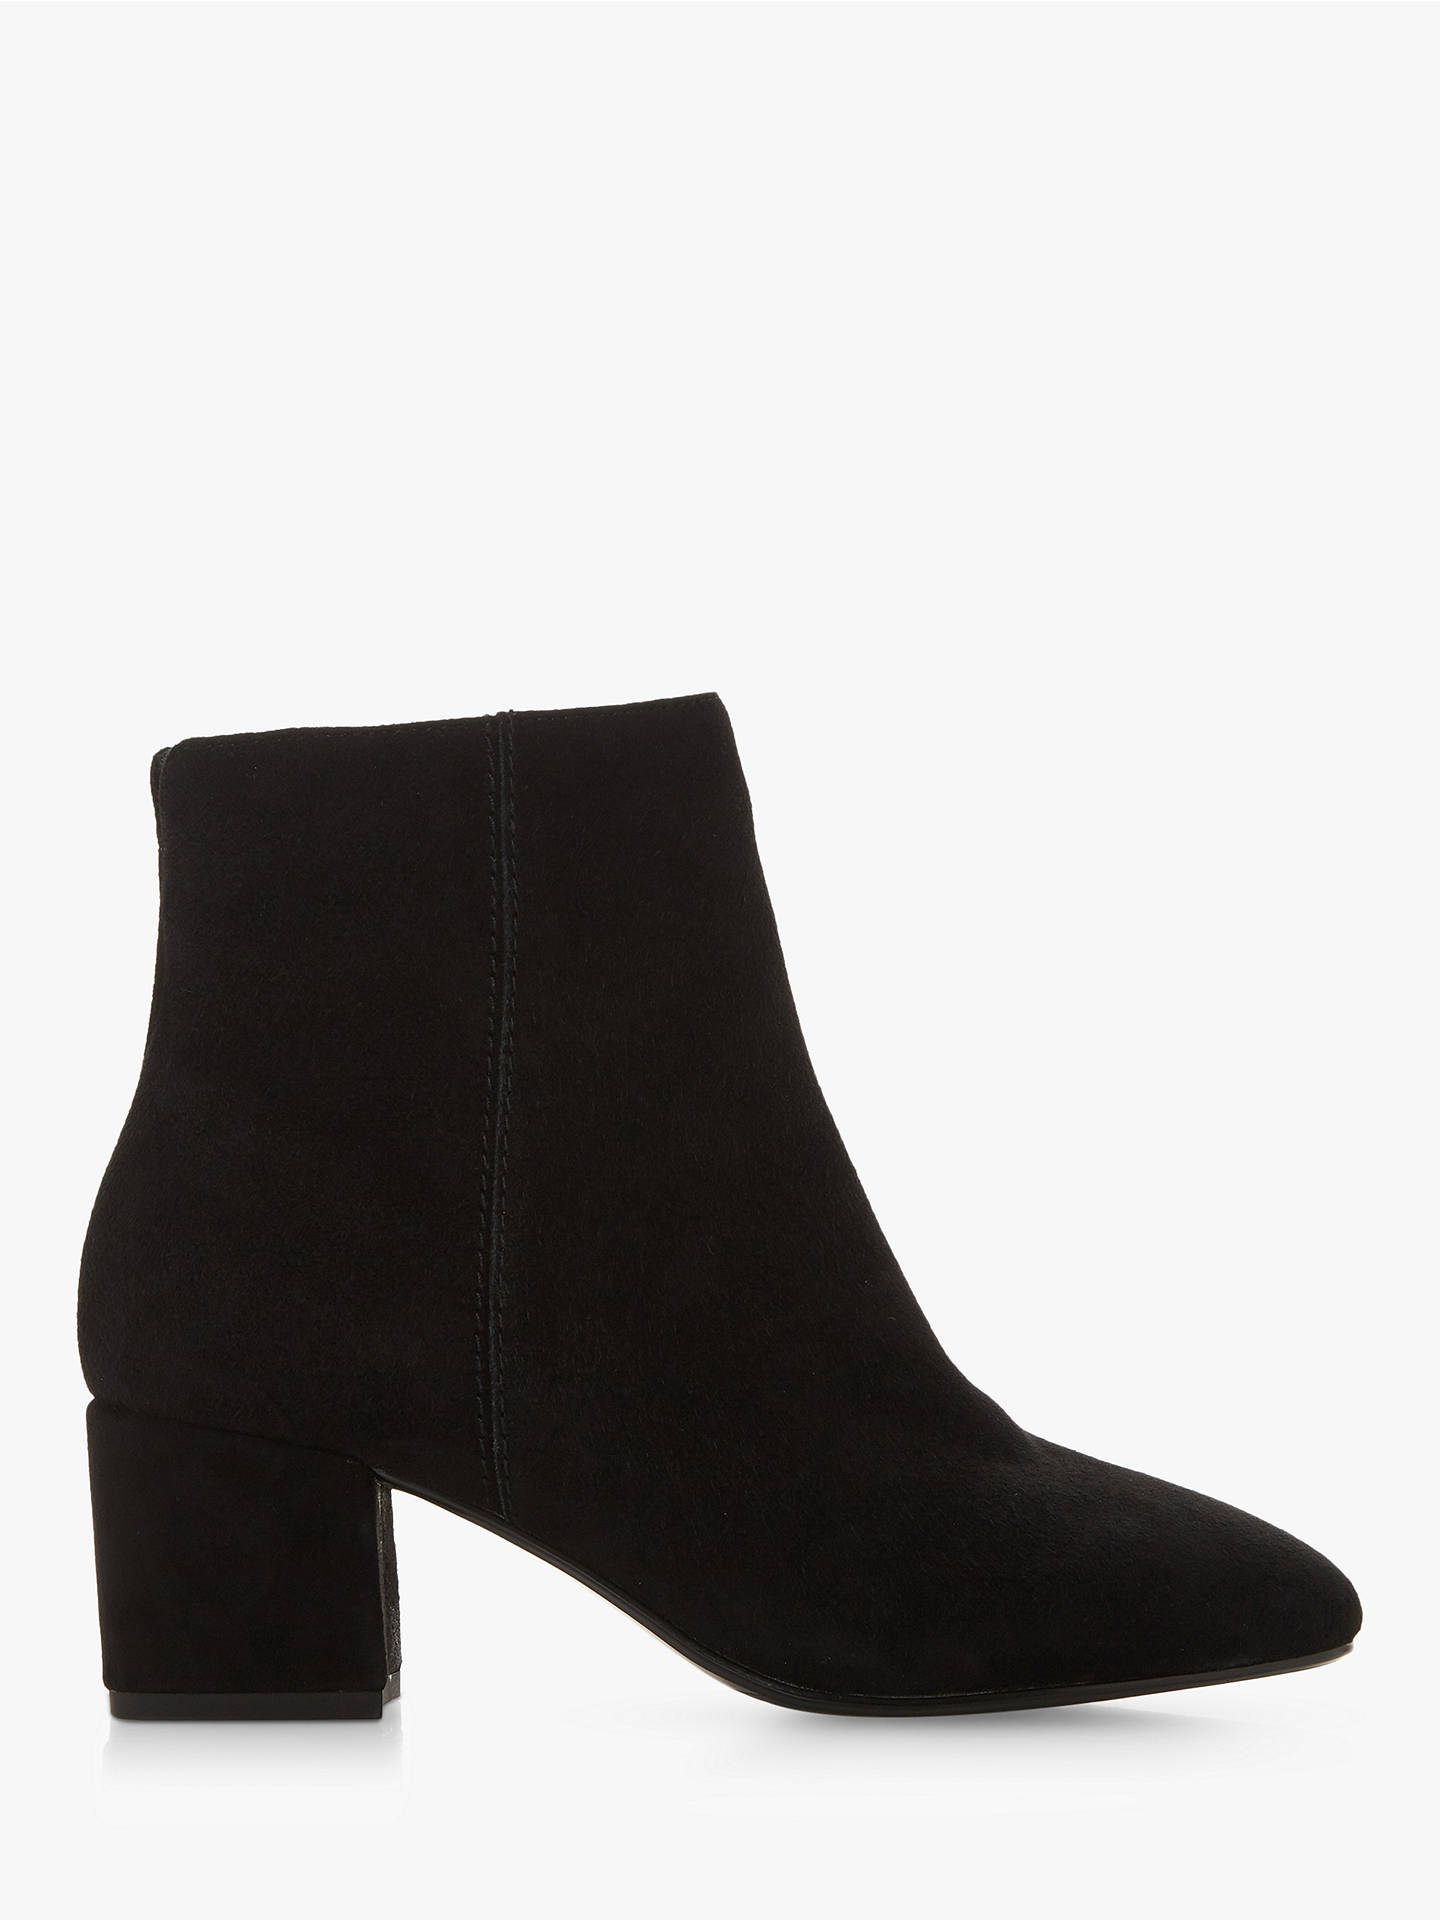 d3287a6a833 Dune Wide Fit Olyvea Block Heeled Ankle Boots, Black Suede at John ...